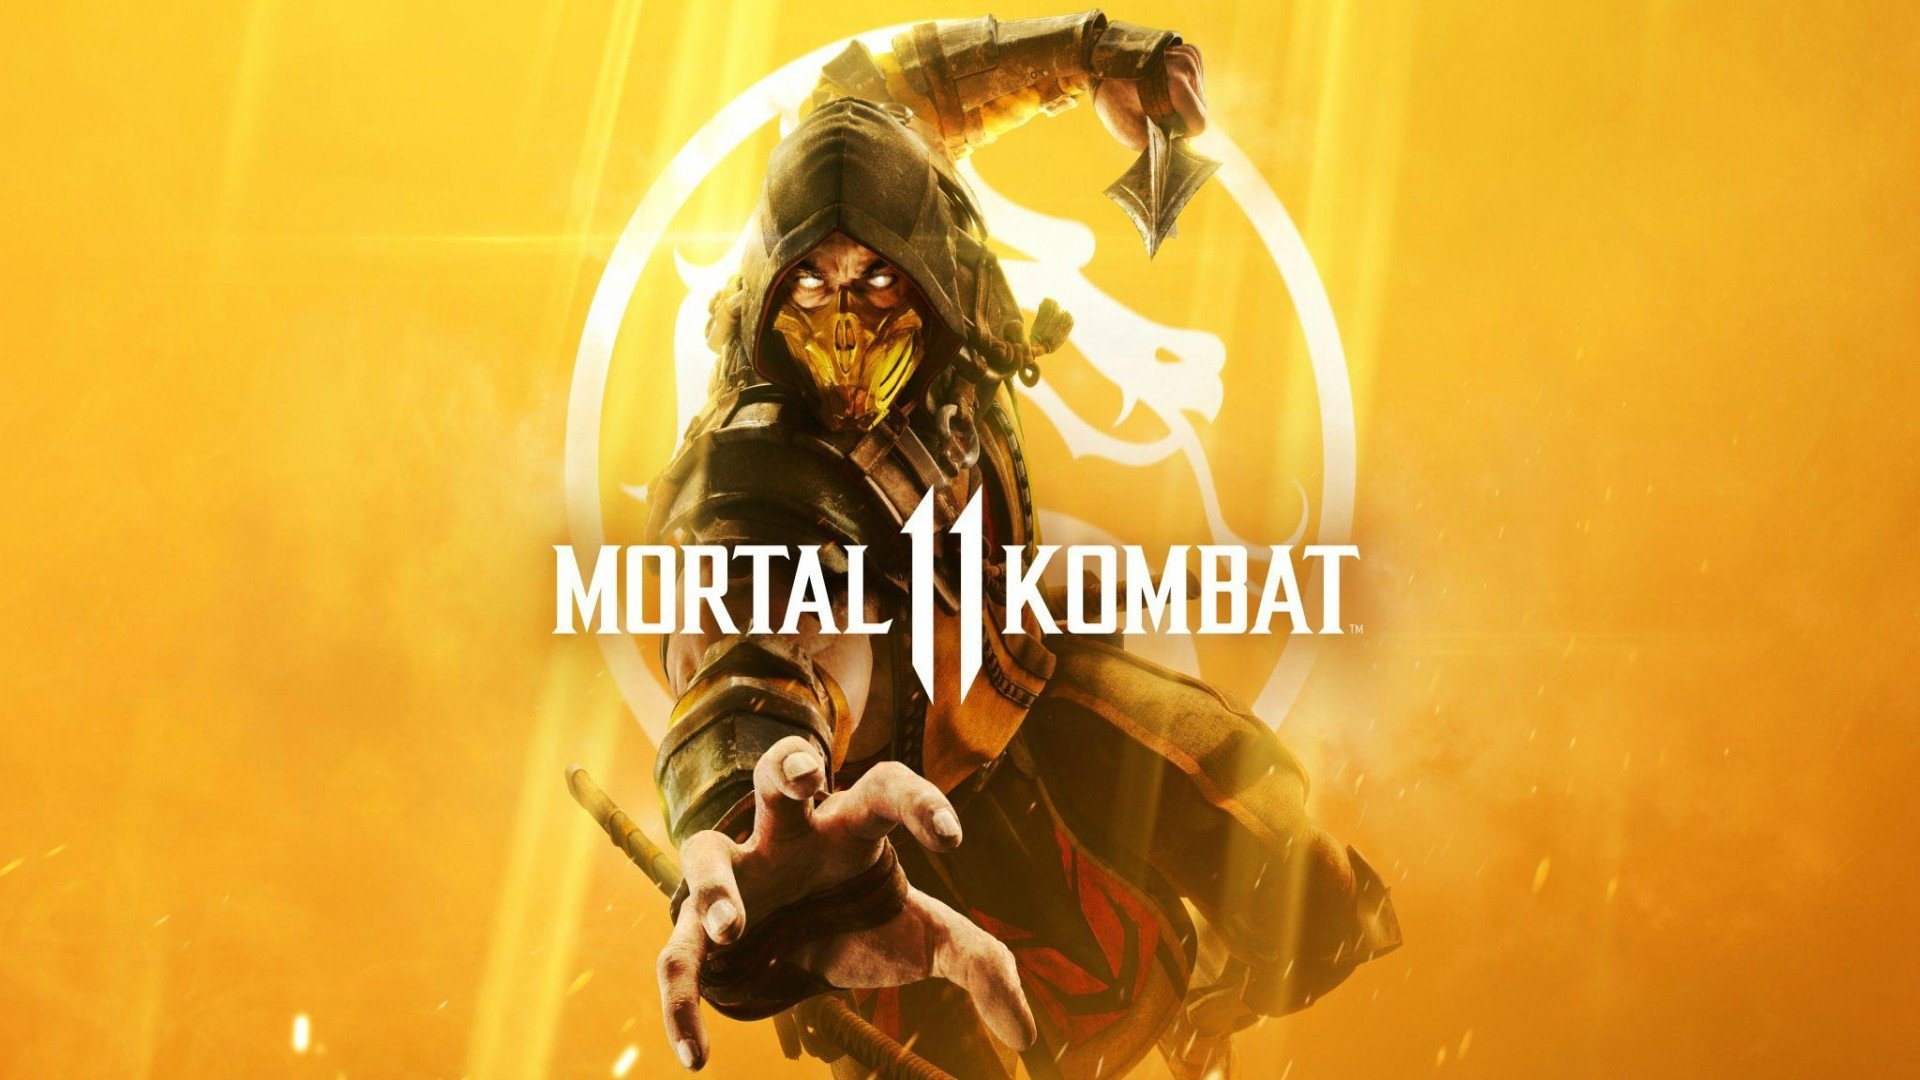 Mortal Kombat 11 Receiving Patch To Balance Grind